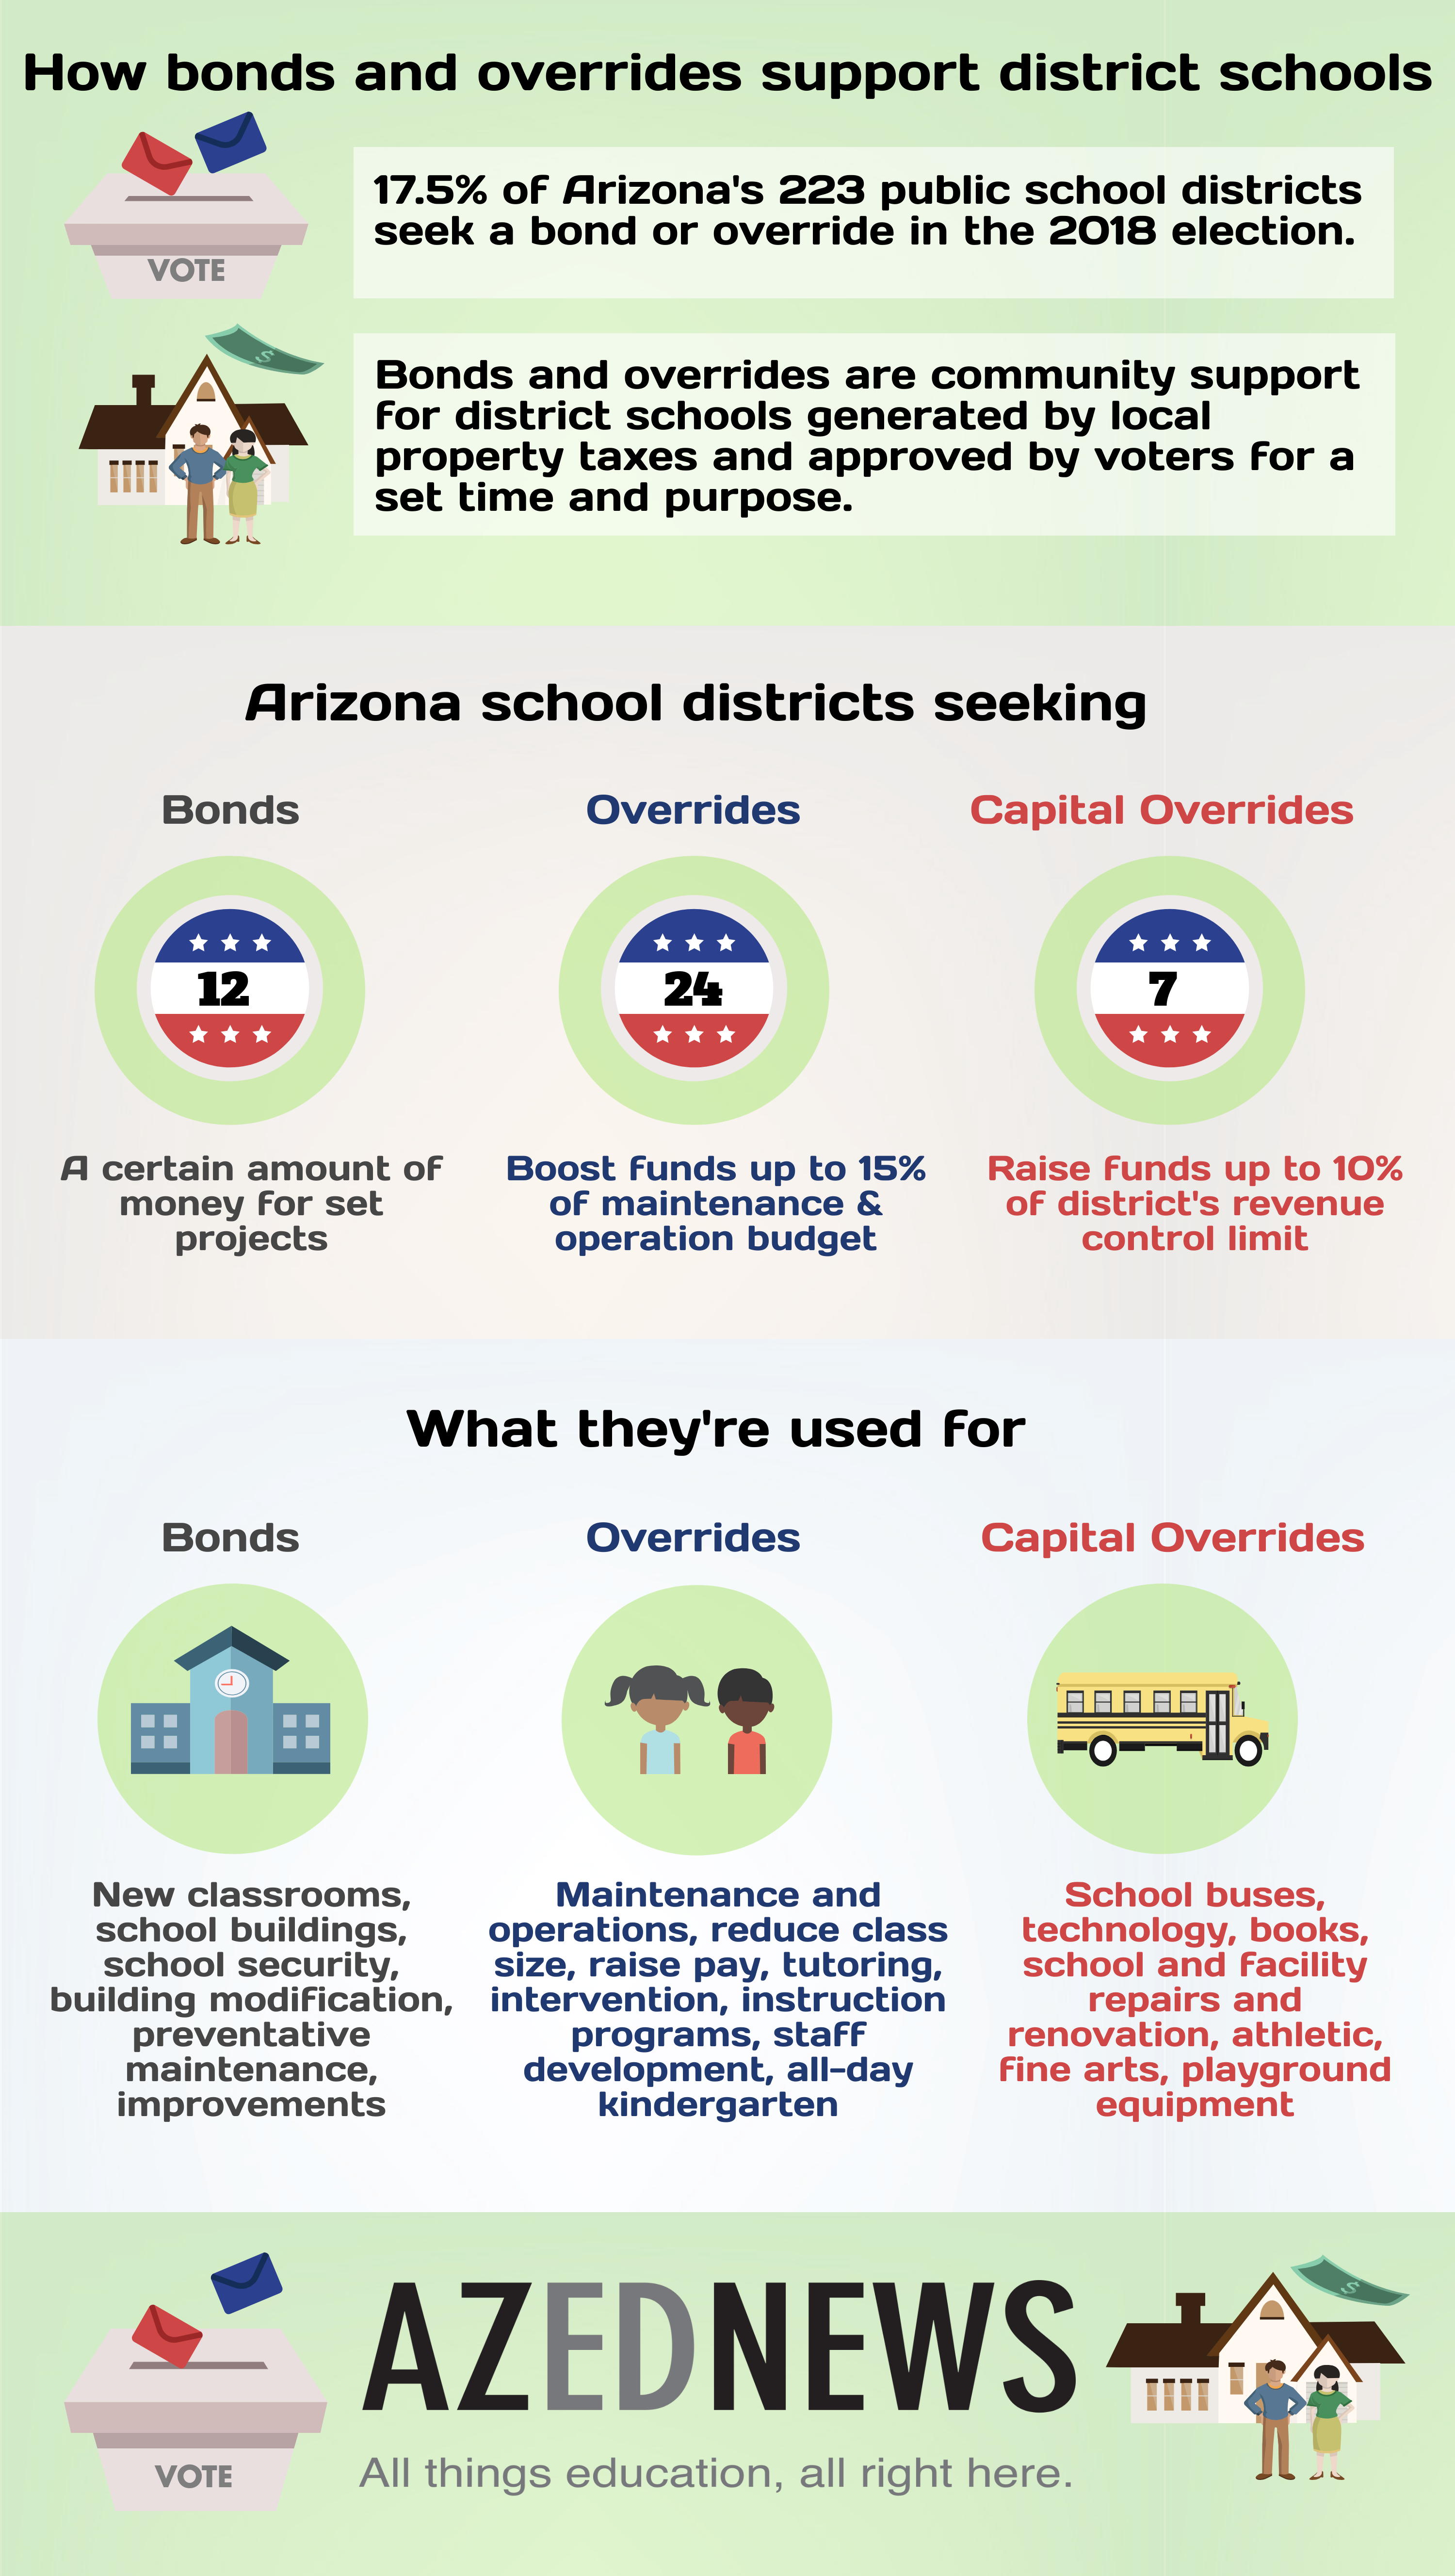 Schools seek local funding through bonds, overrides AZEdNewsUpdated2018BondsOverridesInfographic